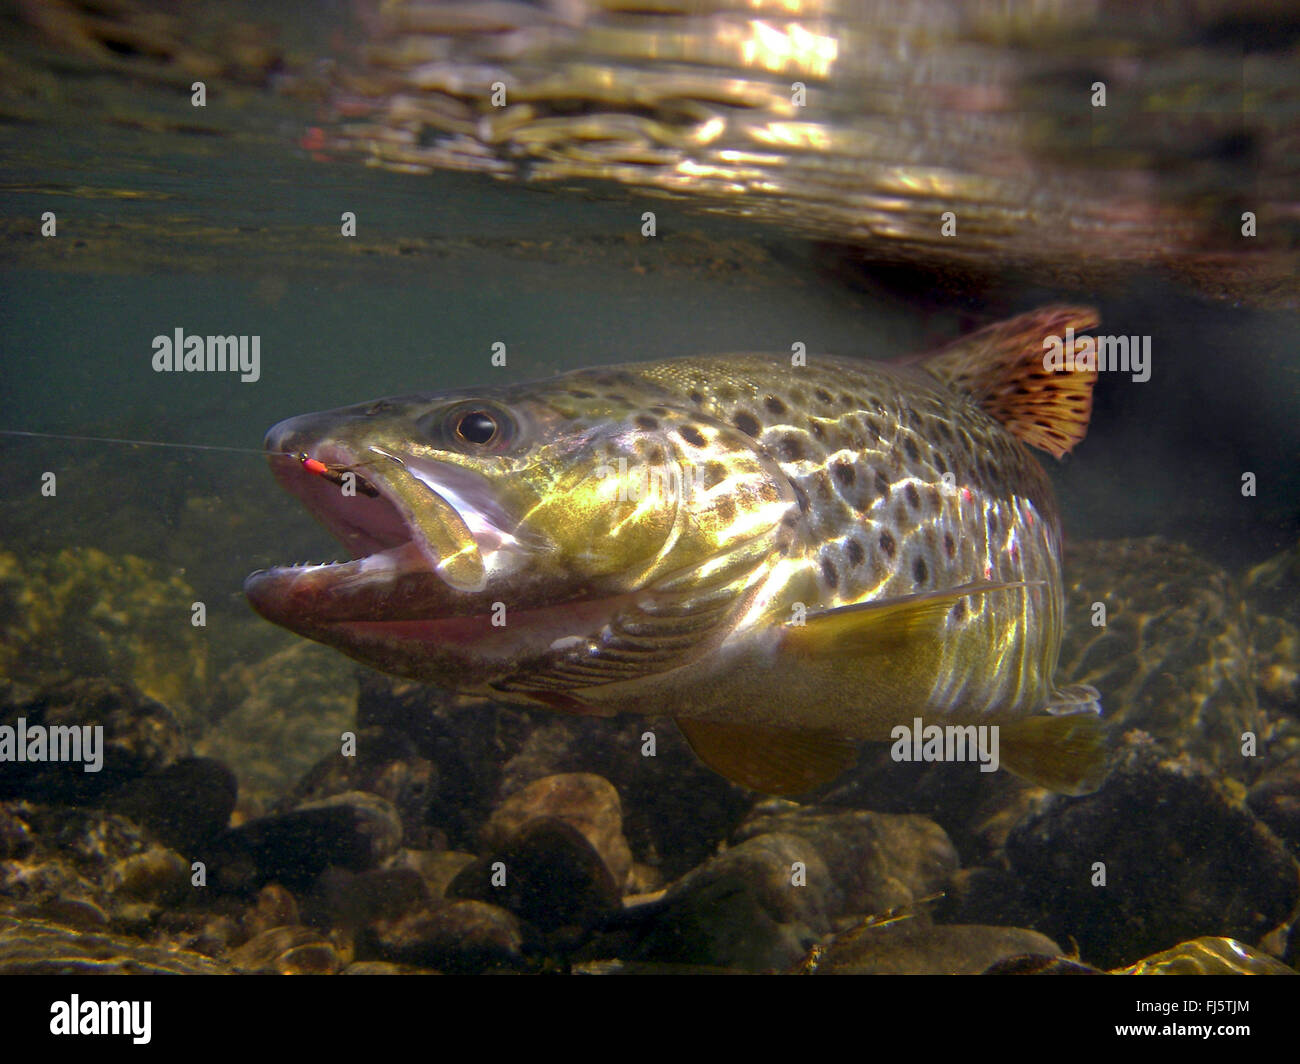 brown trout, river trout, brook trout (Salmo trutta fario), in its habitat, Germany, Baden-Wuerttemberg Stock Photo